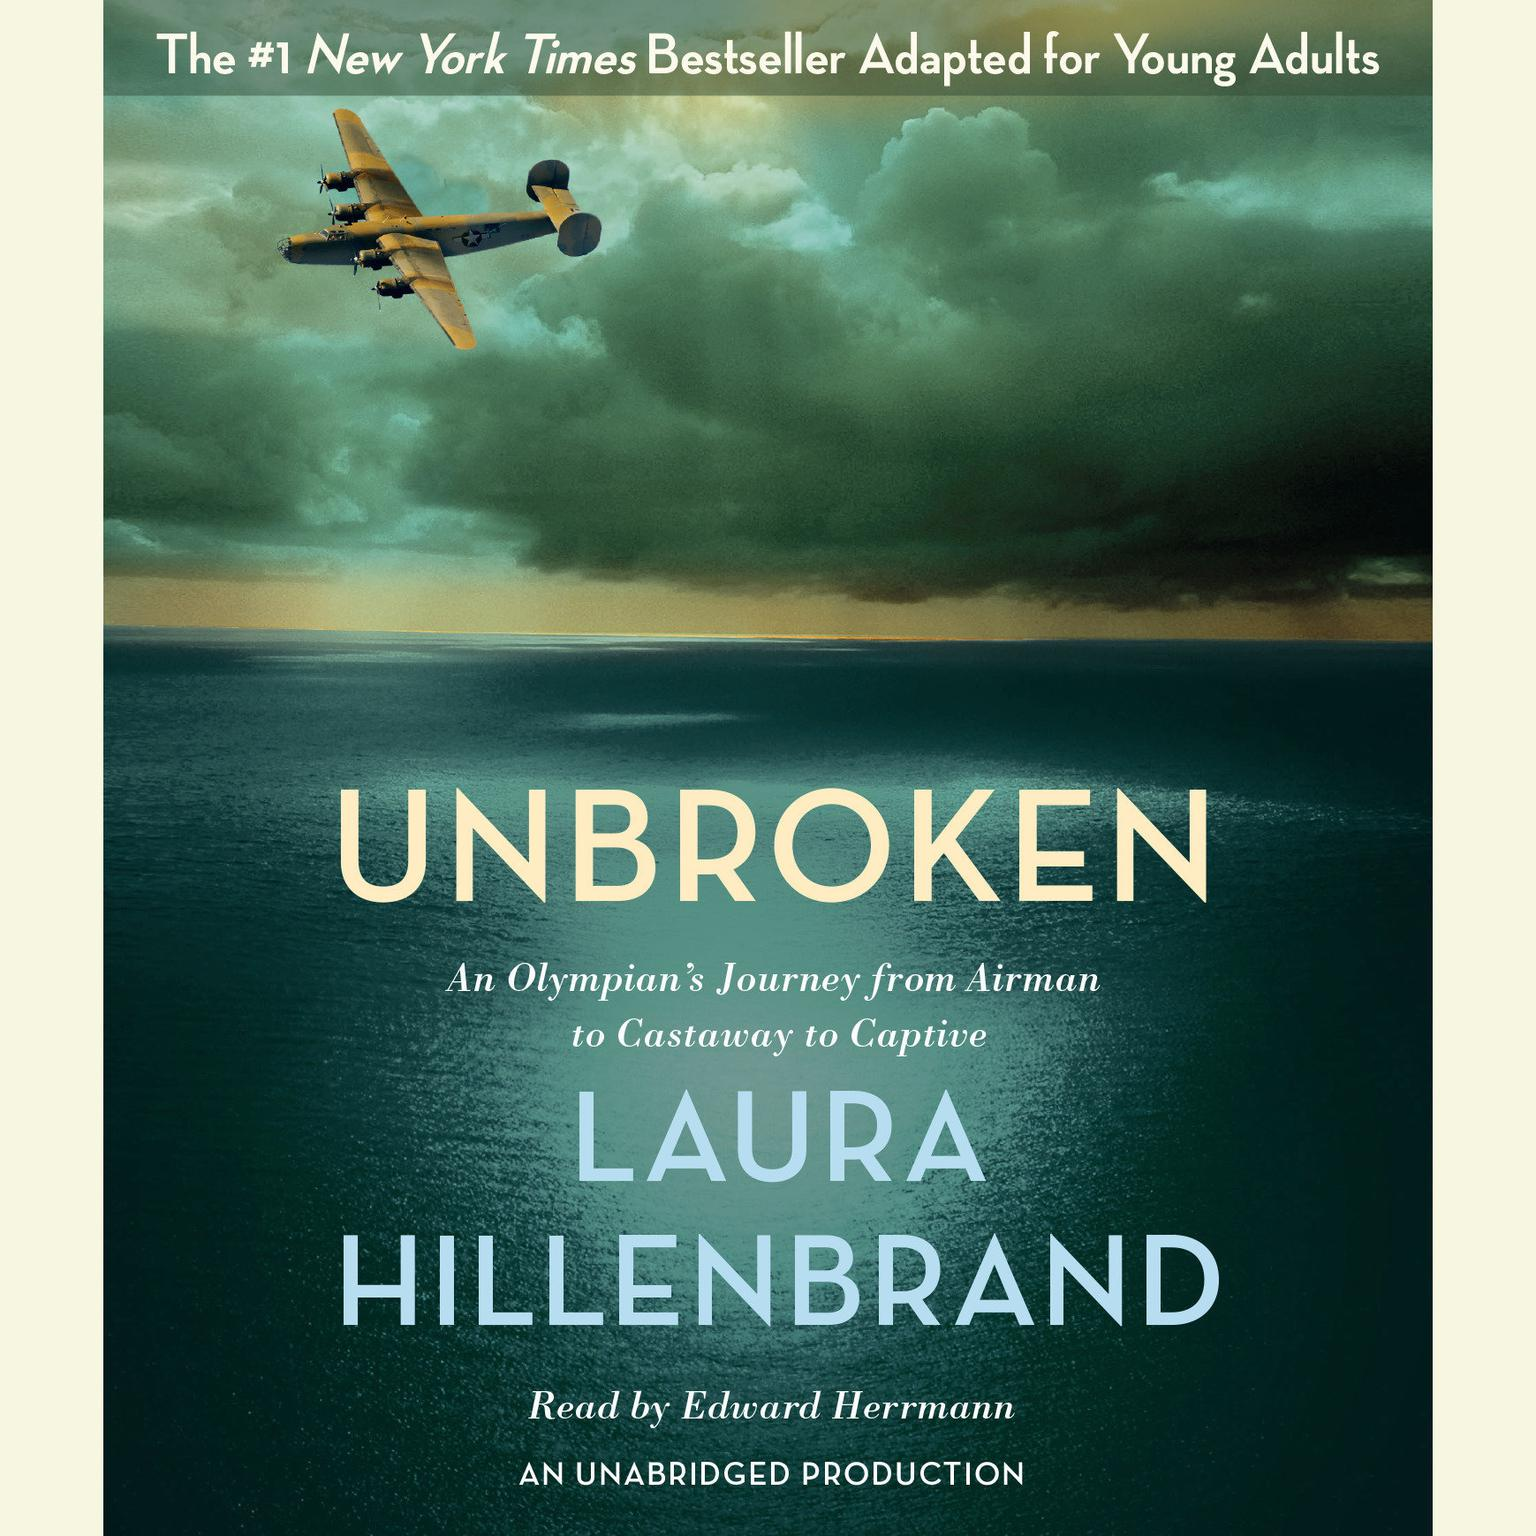 Printable Unbroken (The Young Adult Adaptation): An Olympian's Journey from Airman to Castaway to Captive Audiobook Cover Art